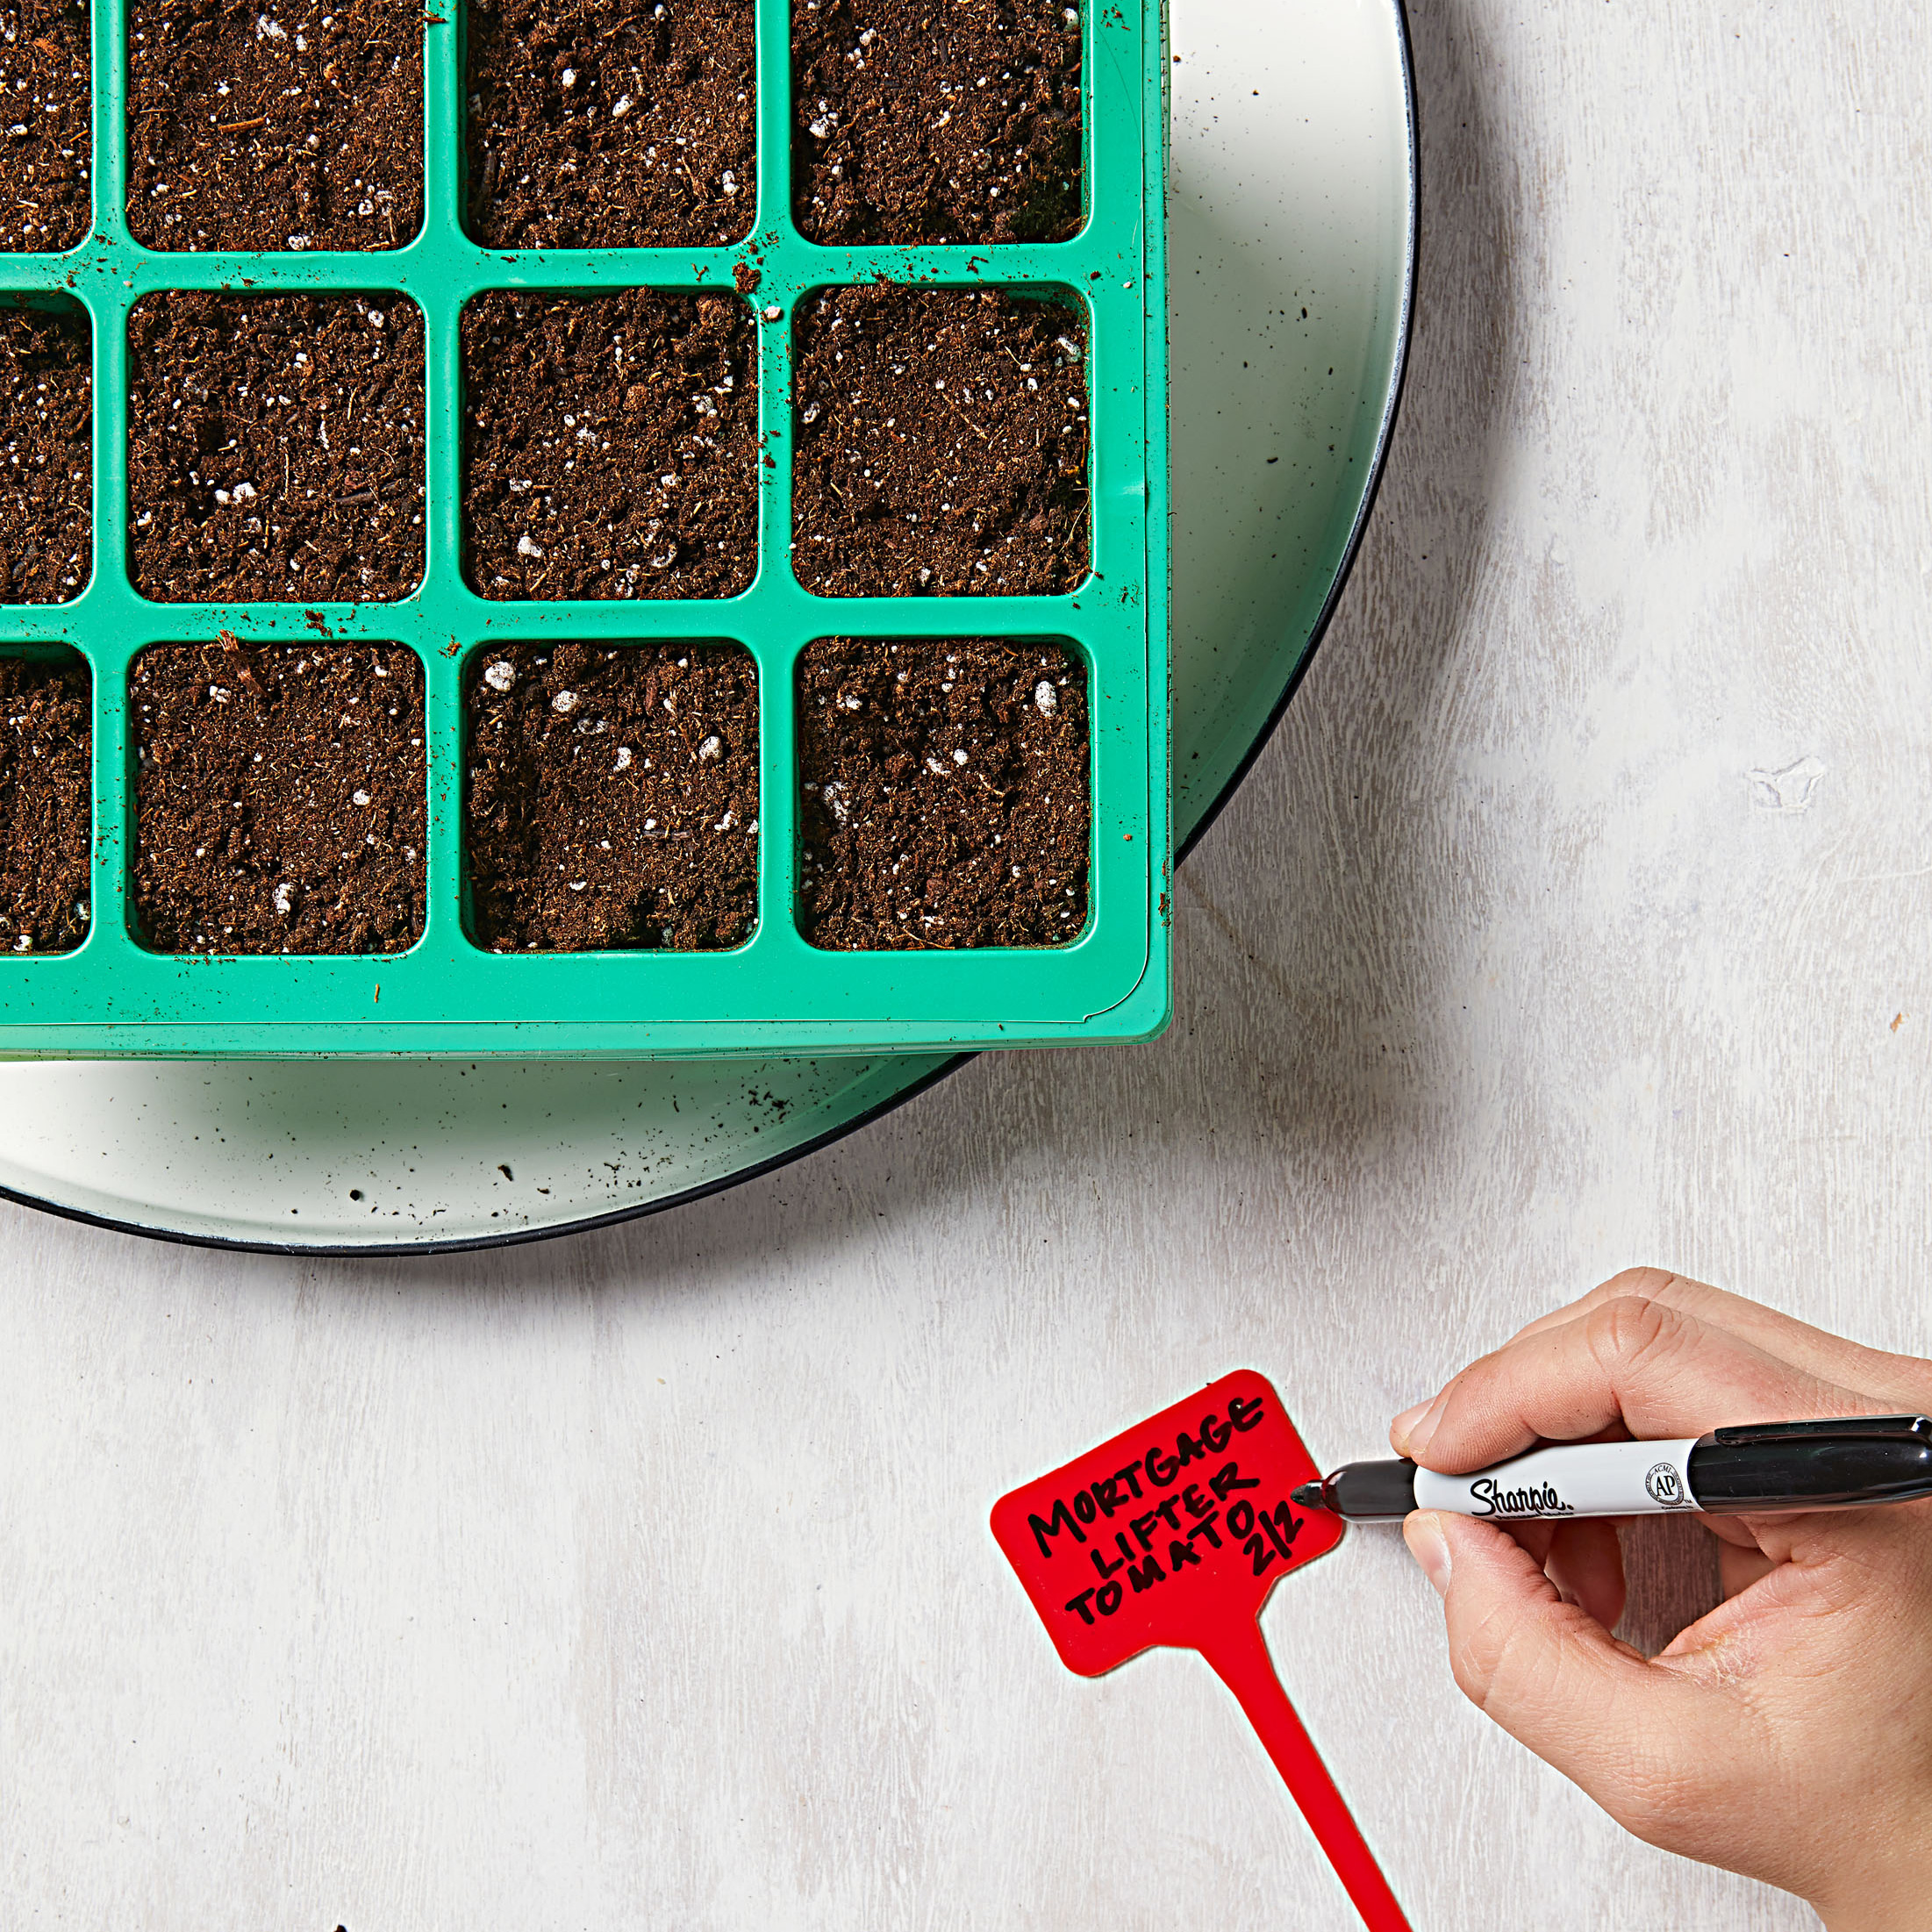 How to start seeds—Step 5